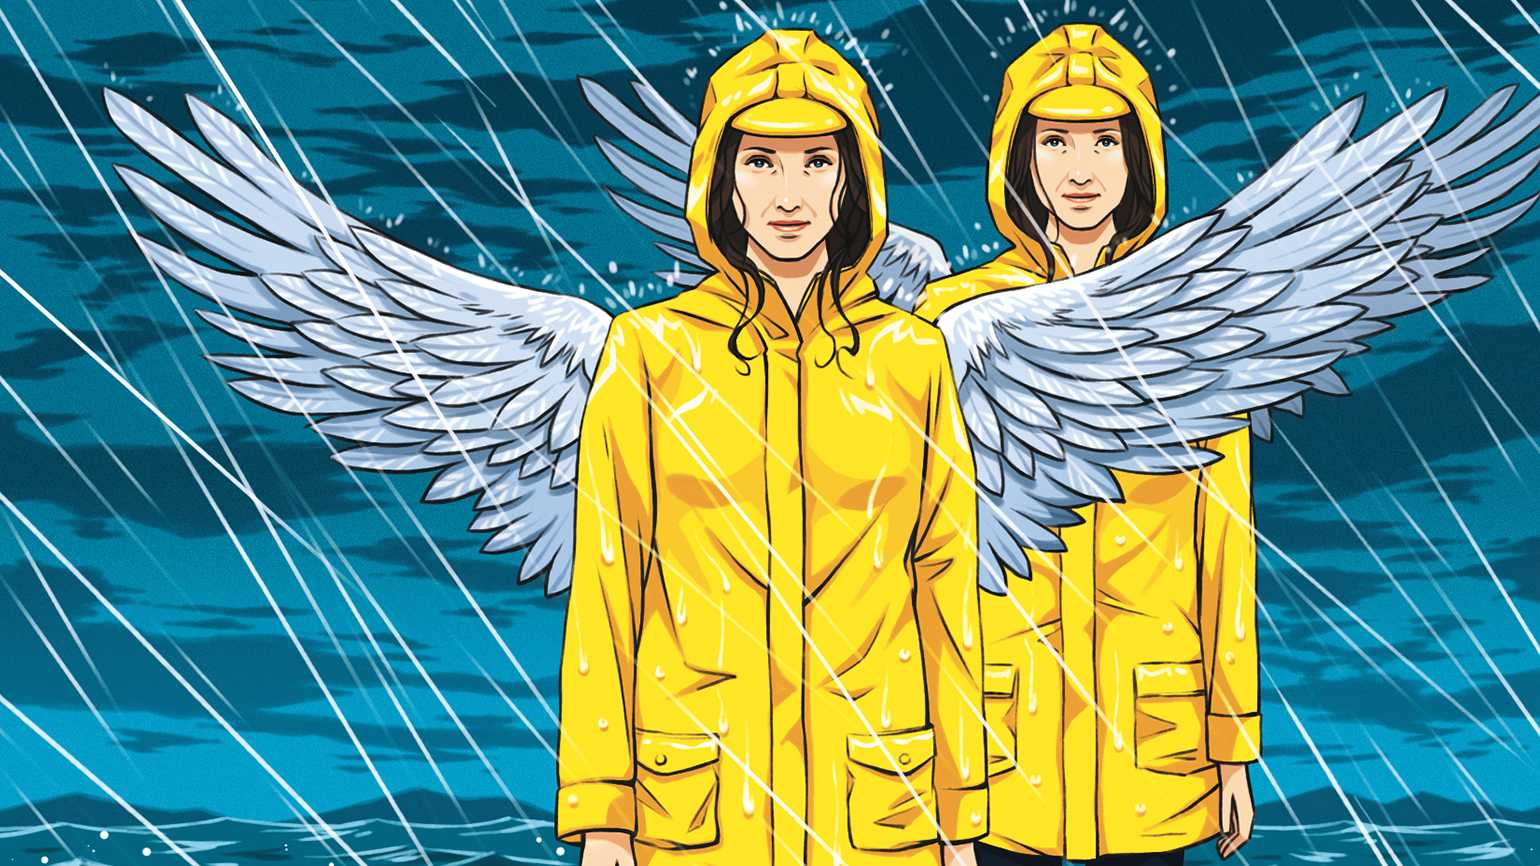 An artist's rendering of a pair of angels in yellow raincoats and caps